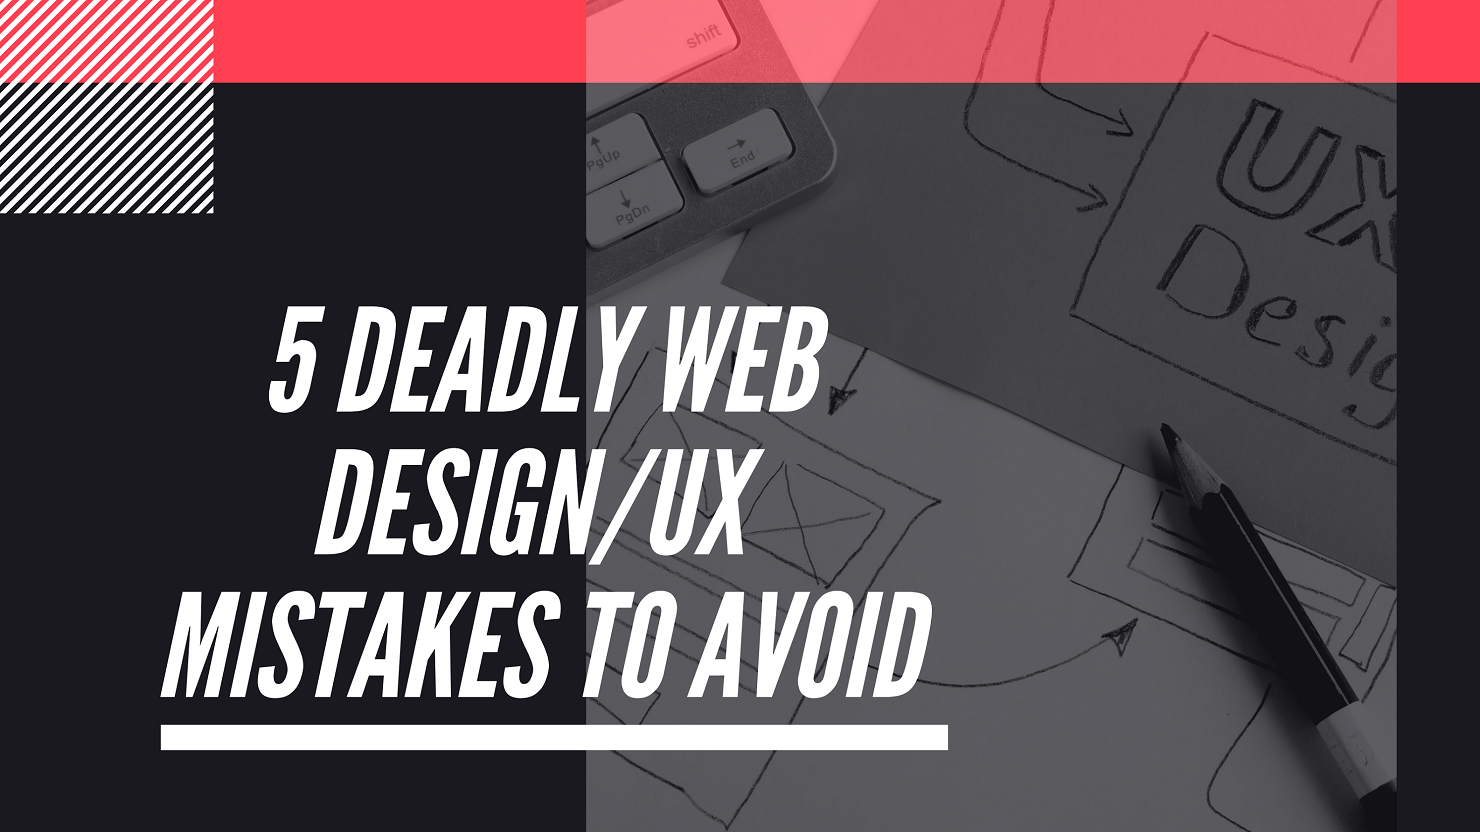 5 Deadly Web Design/UX Mistakes to Avoid